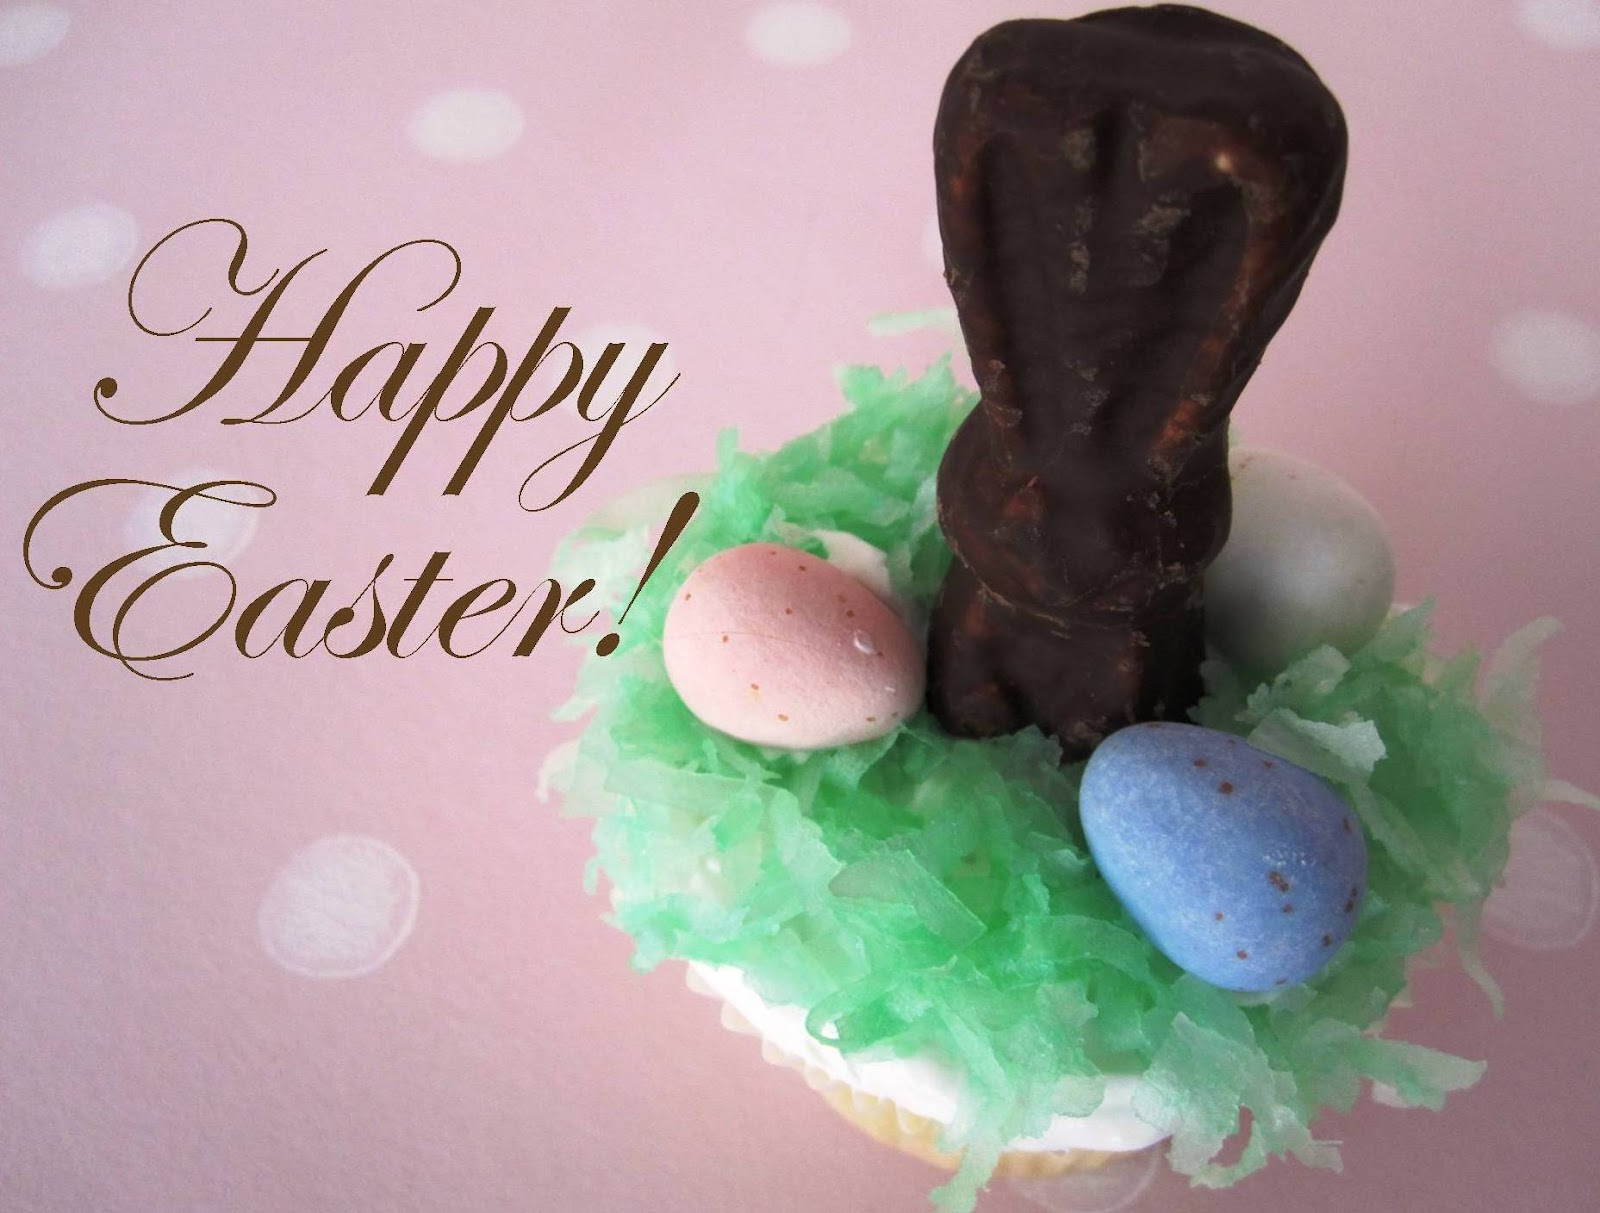 Picturespool Easter Sunday Greetings Easter Bunnyeggs Images